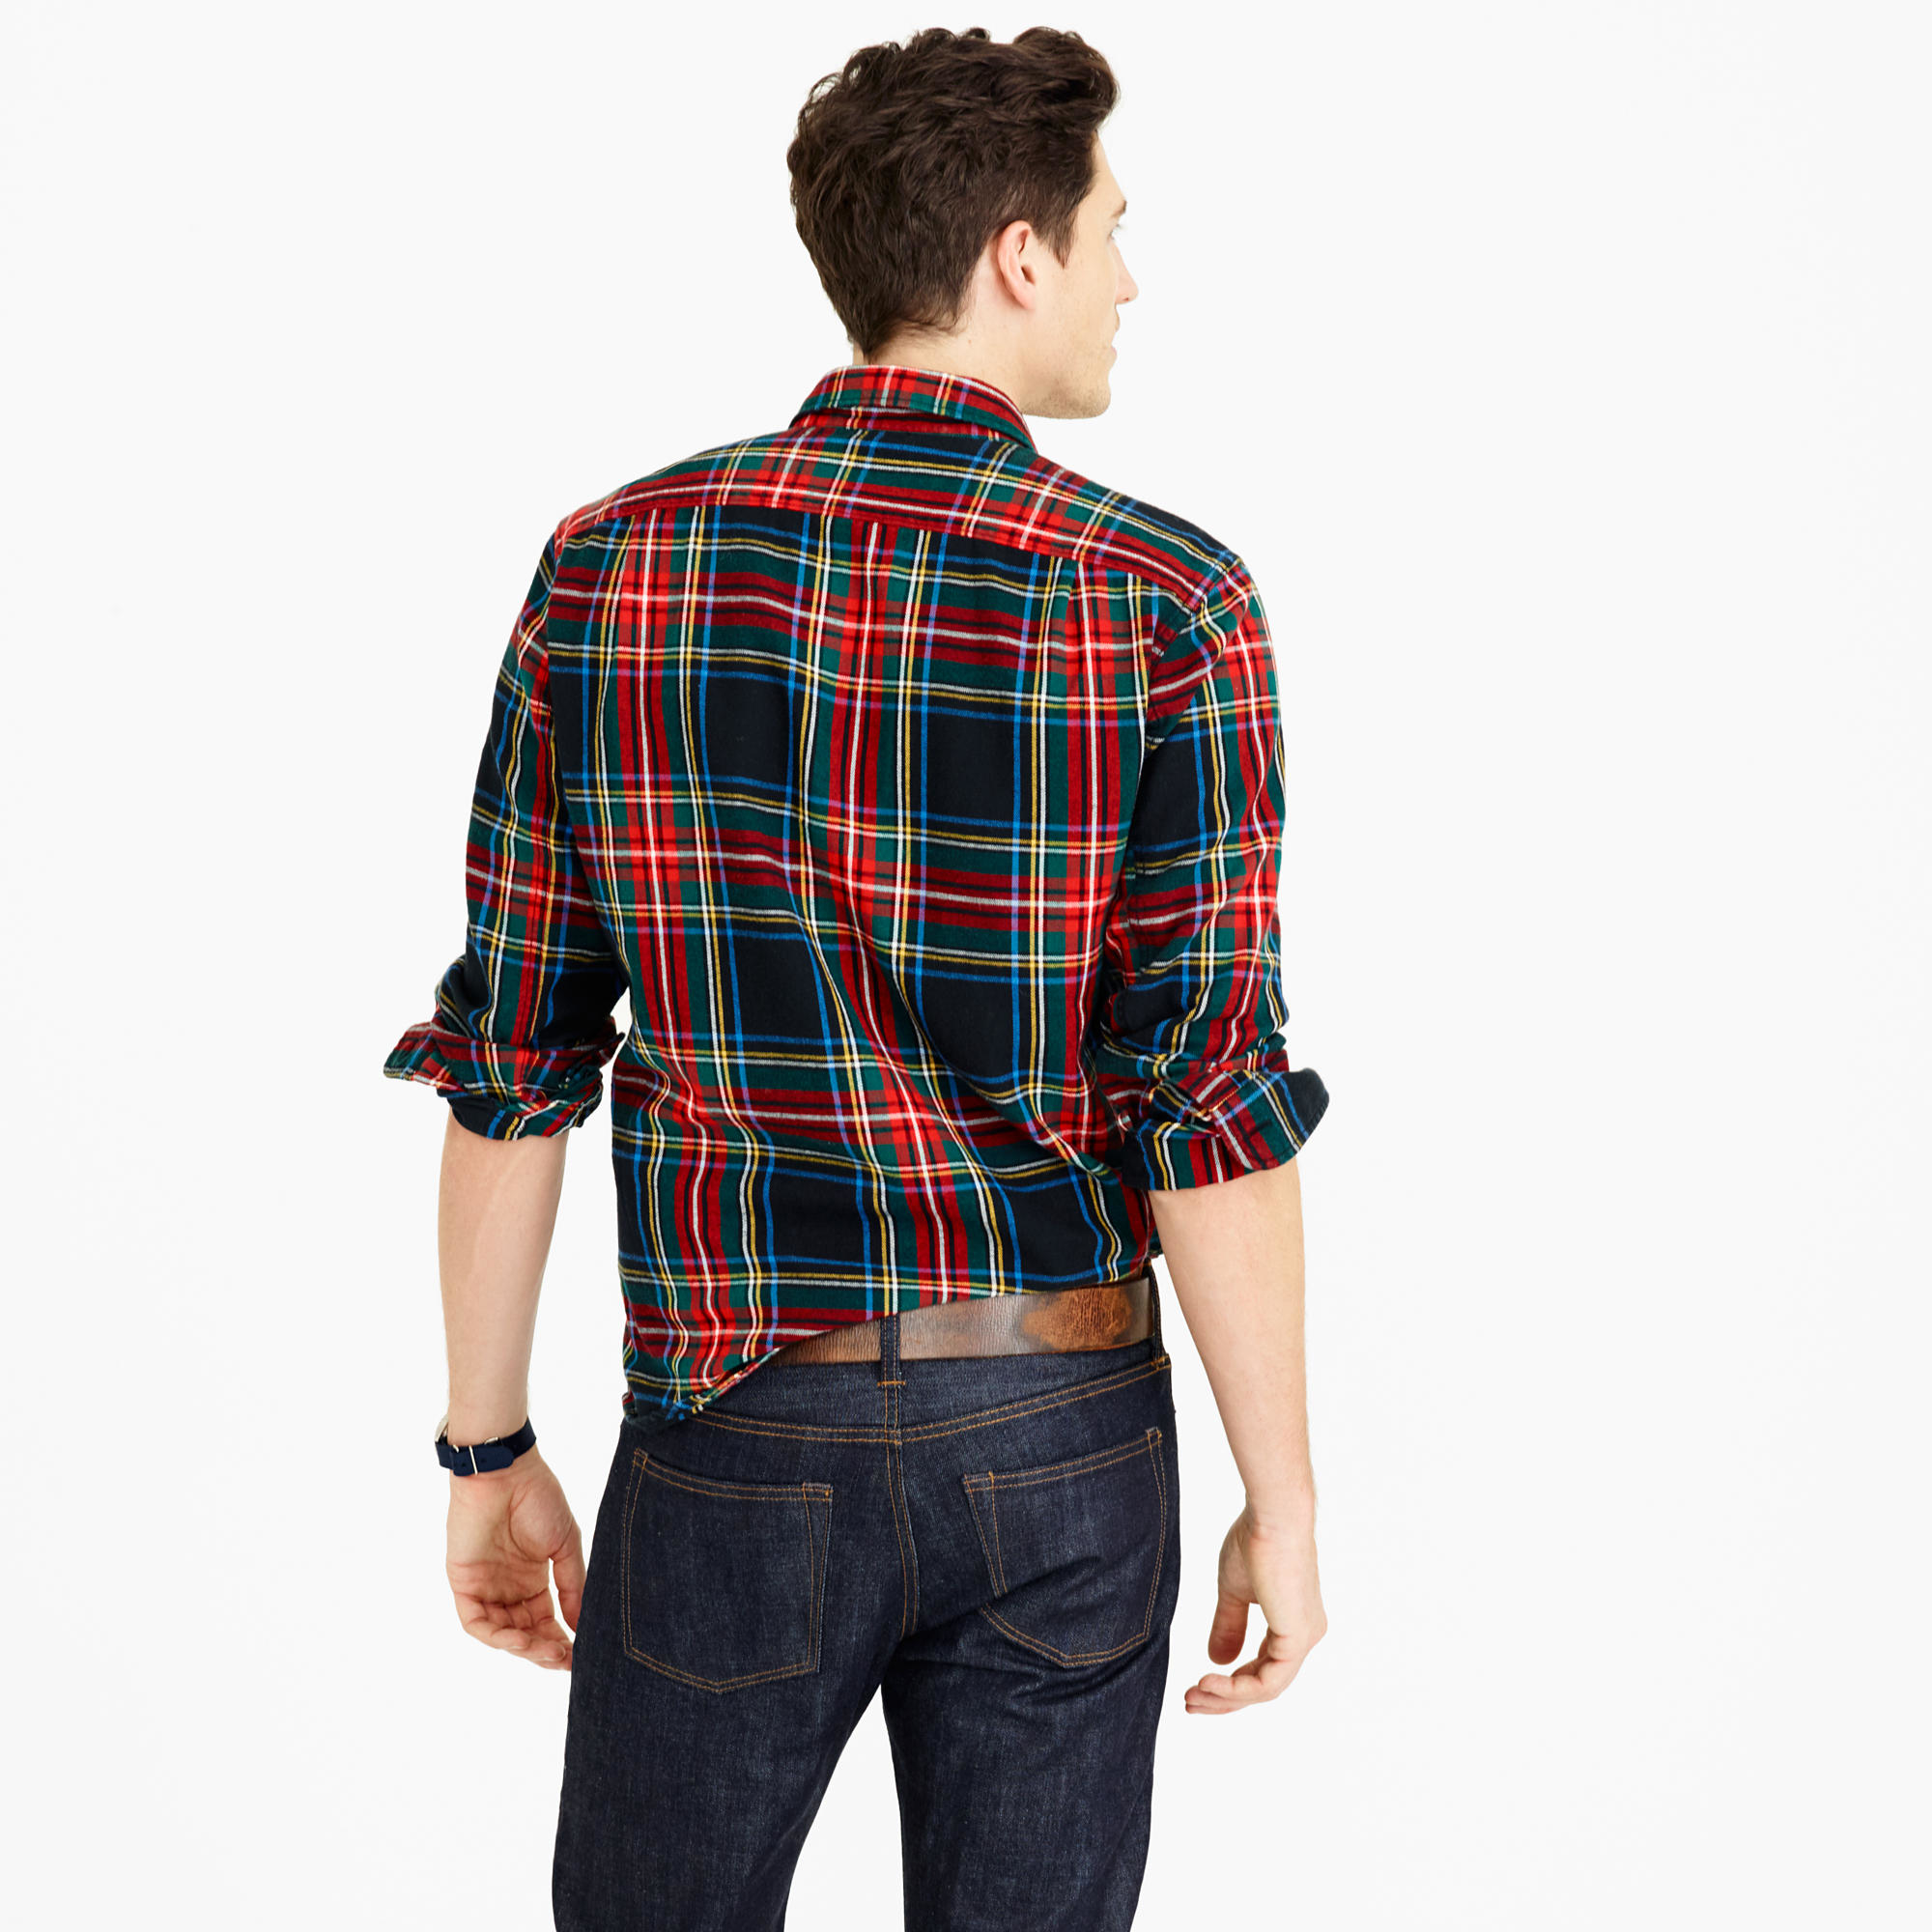 3a9d11922436 Lyst - J.Crew Midweight Flannel Shirt In Stewart Plaid in Black for Men